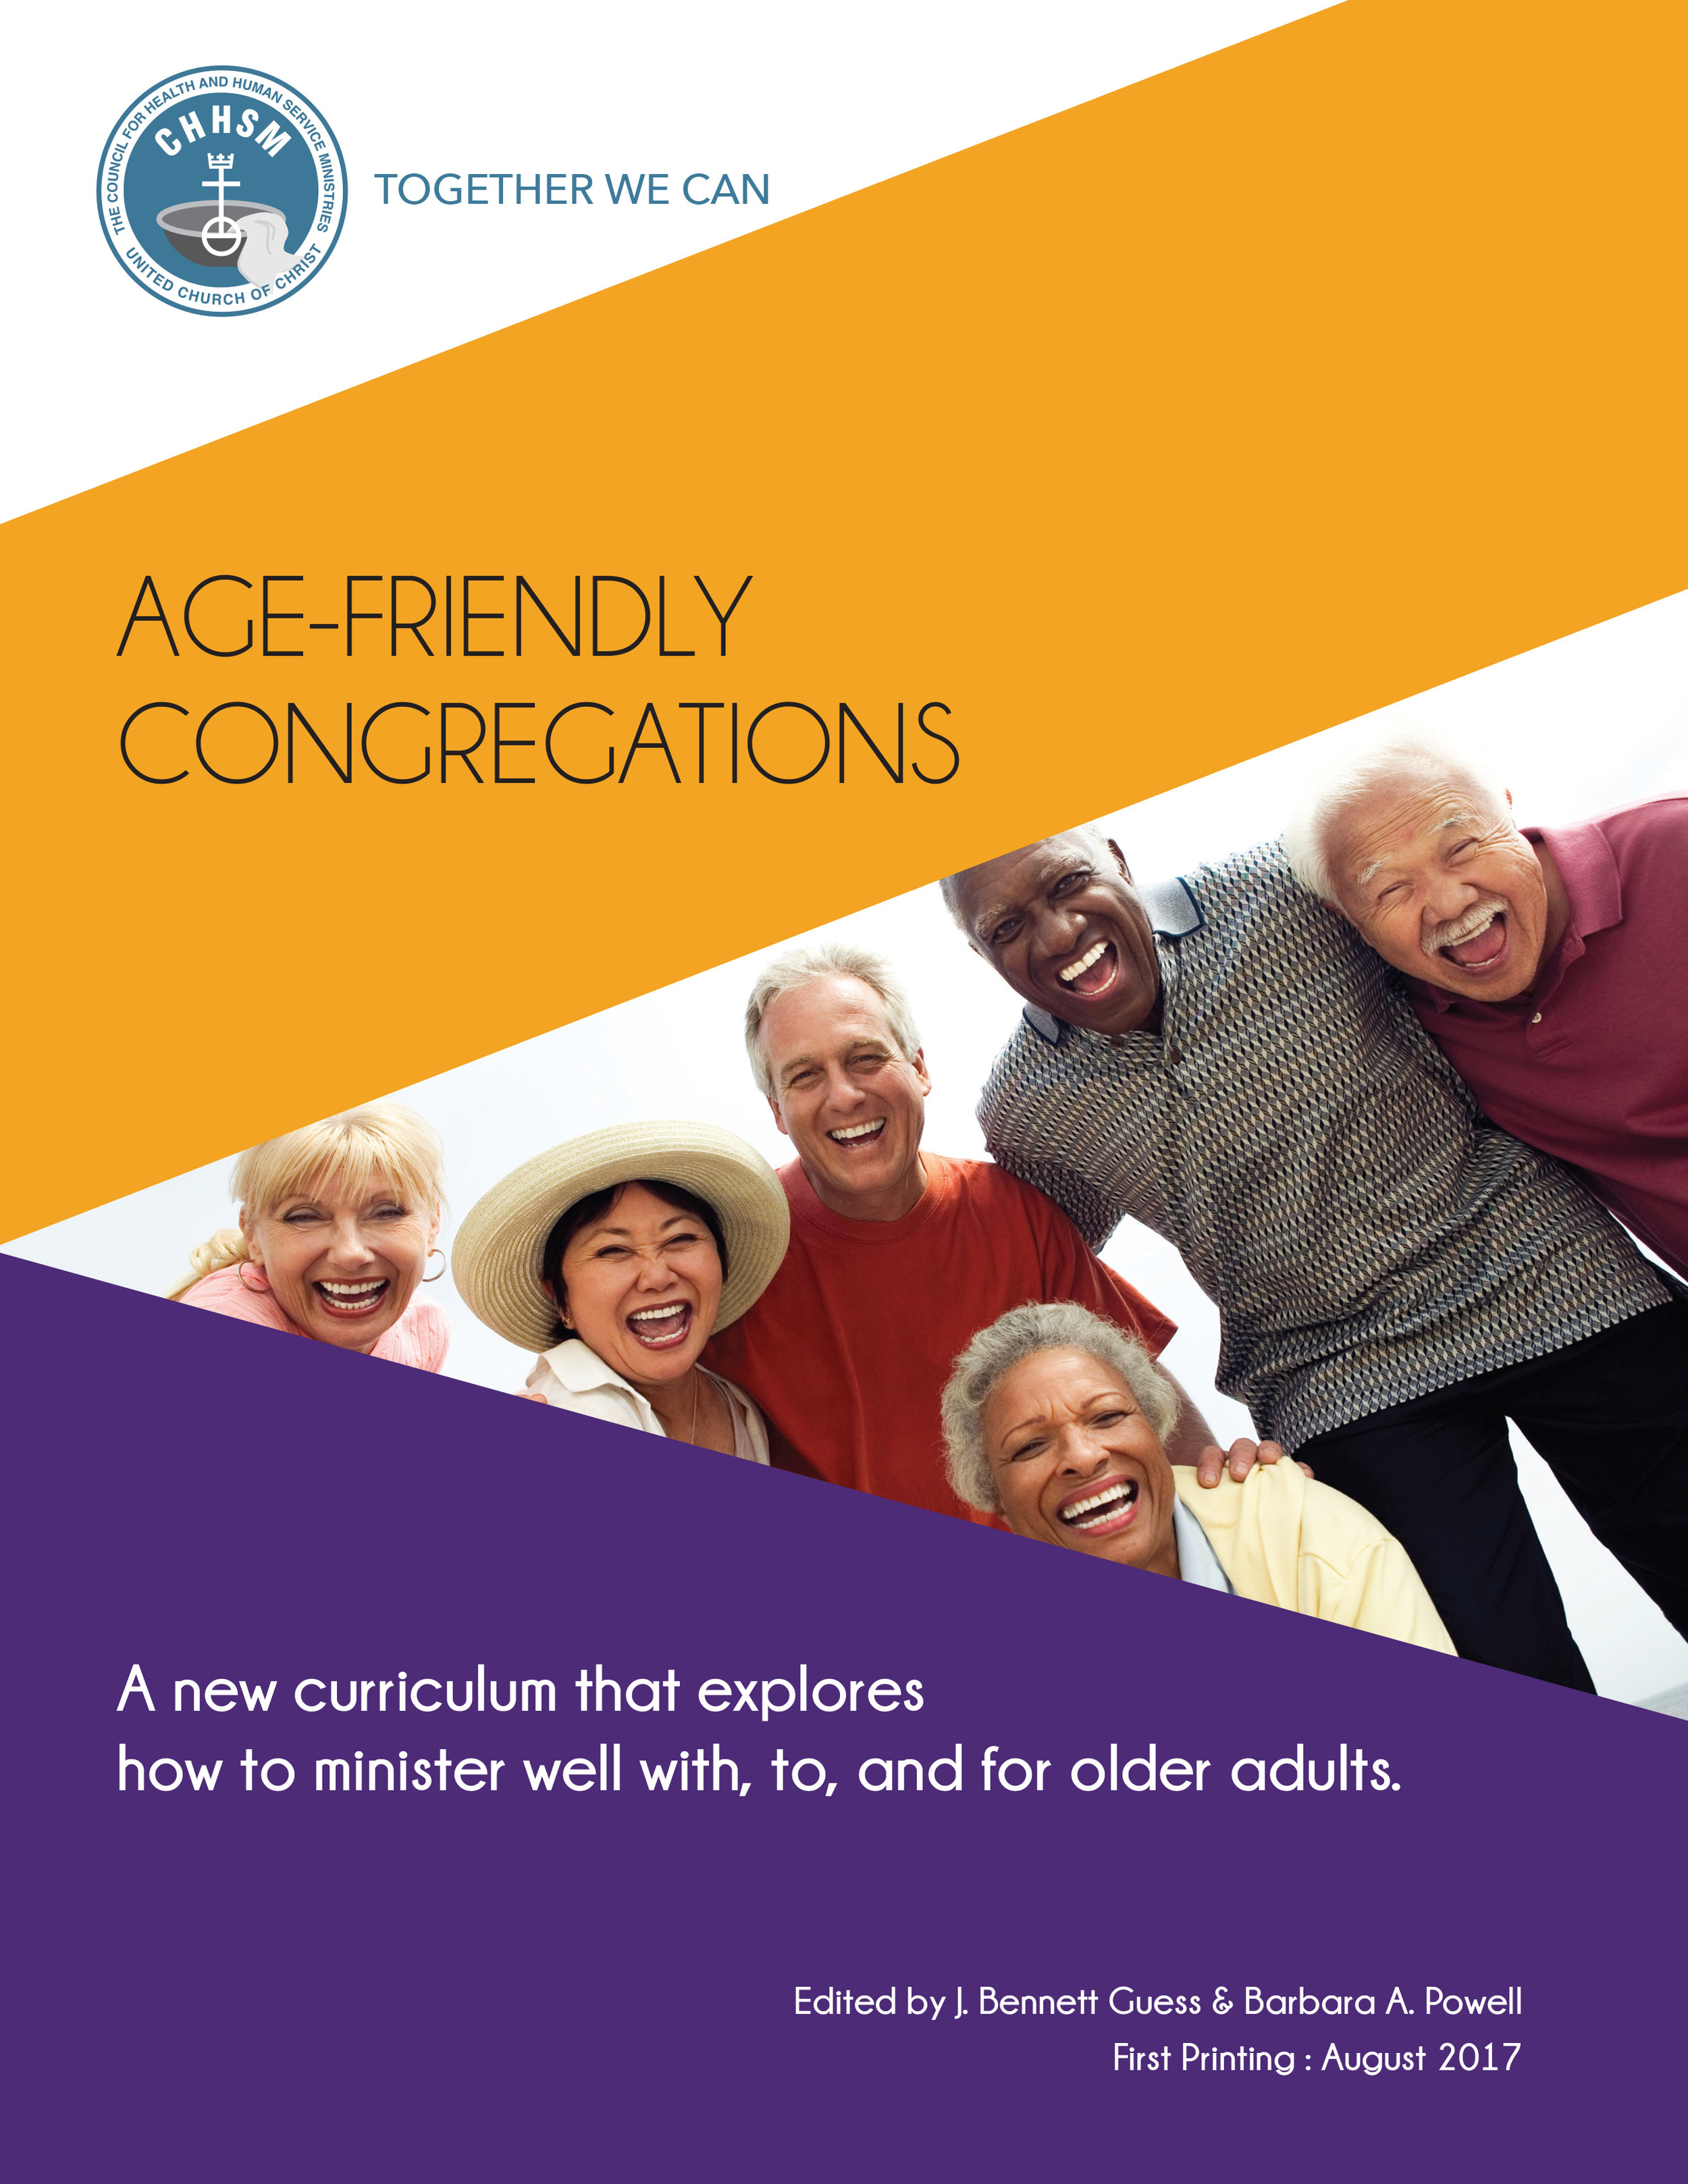 agefriendlyfordownload-1.jpg